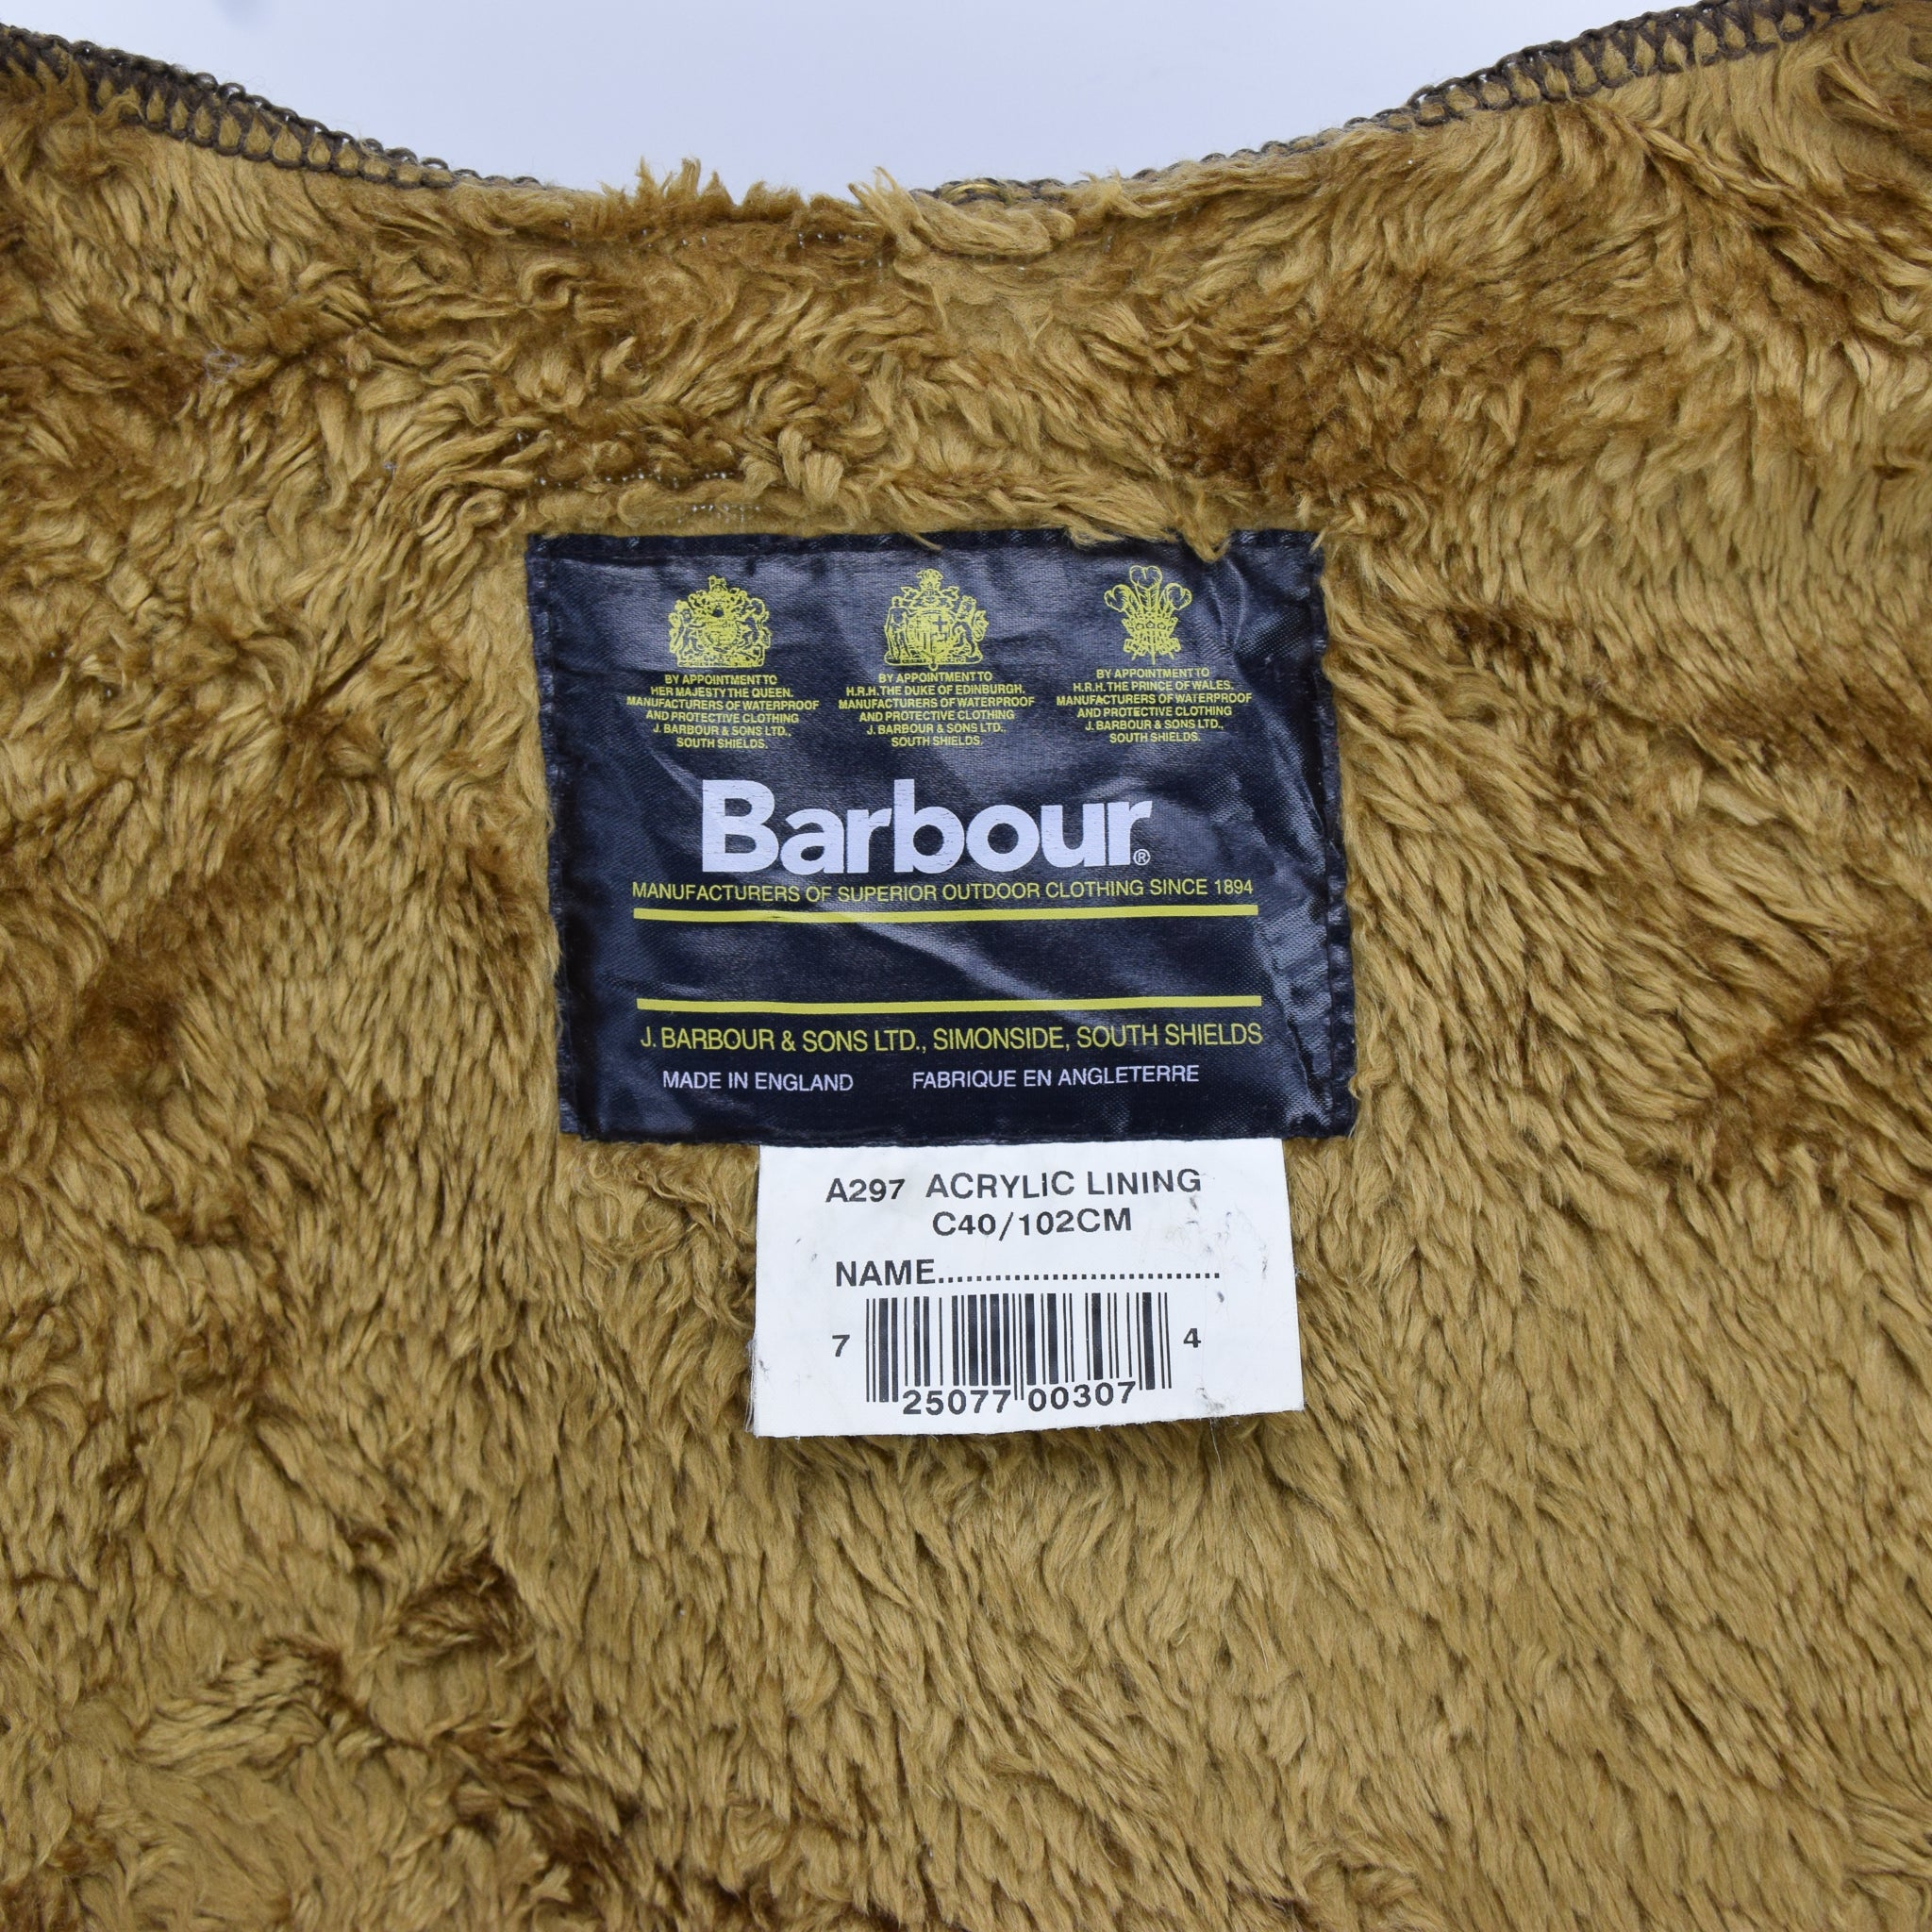 Vintage Barbour A297 Pile Faux Fur Acrylic Liner Made In England C40 / 102cm label